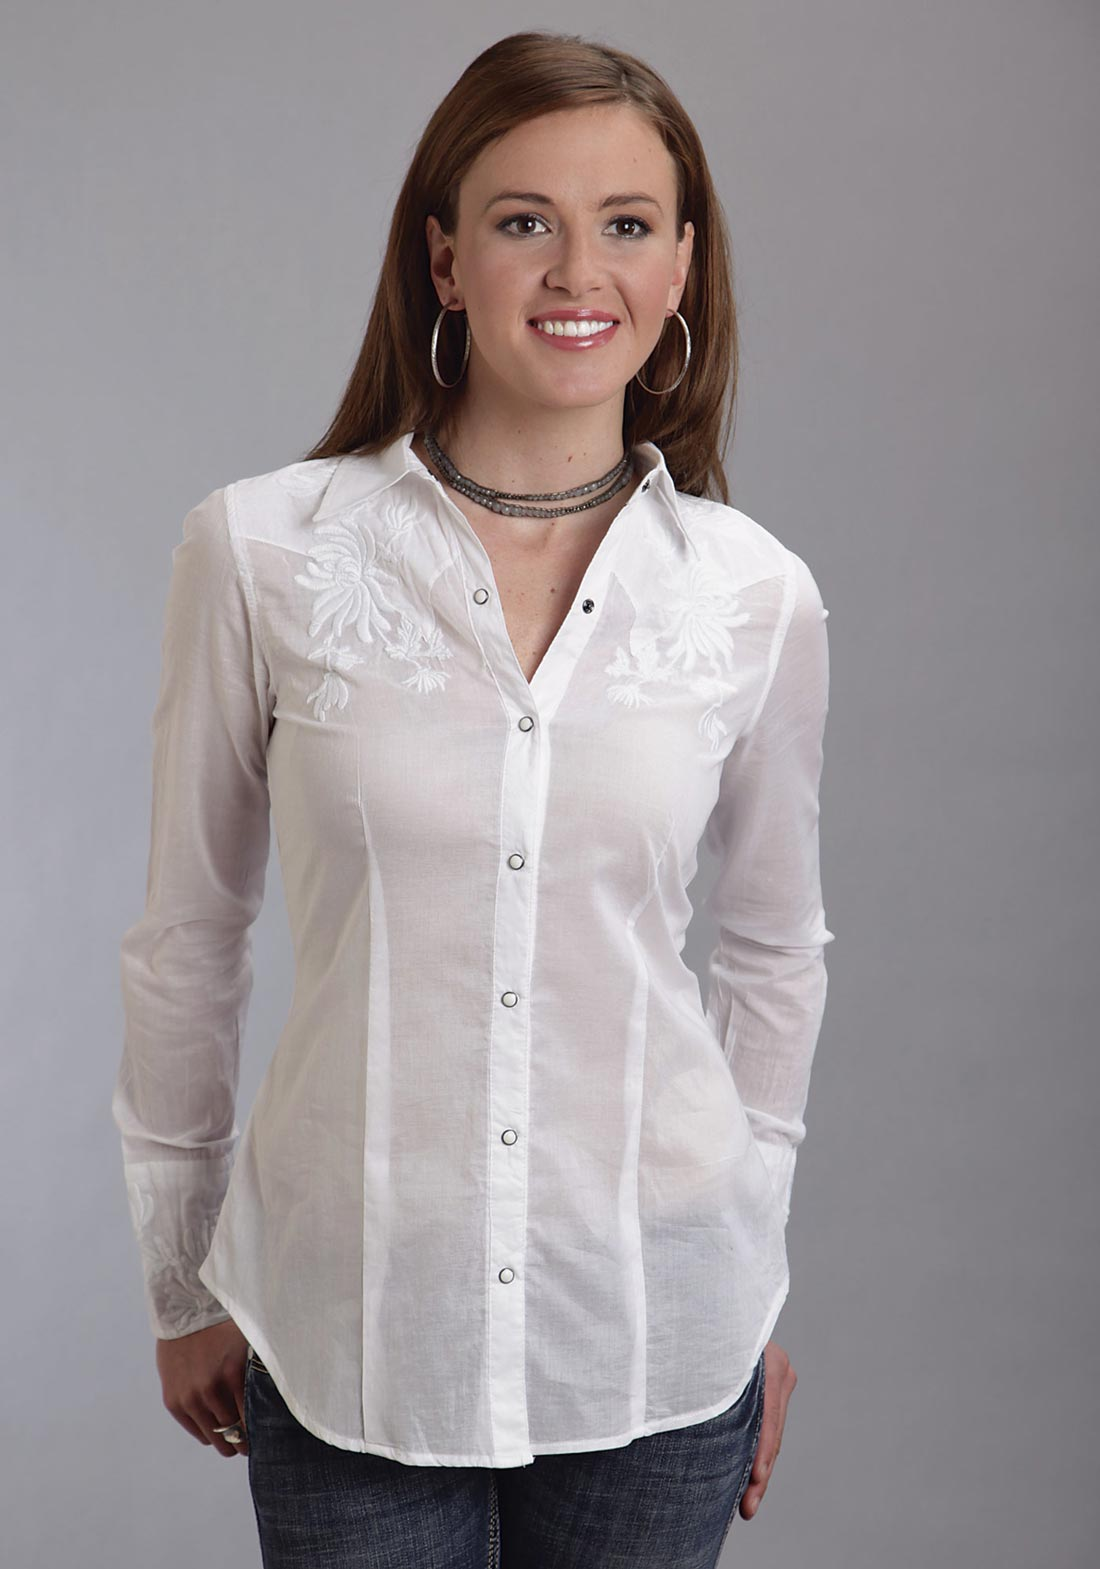 Long Sleeve Shirts: Free Shipping on orders over $45 at ciproprescription.ga - Your Online Tops Store! Overstock uses cookies to ensure you get the best experience on our site. If you continue on our site, you consent to the use of such cookies. Women's Wispy White Tunic Set - Long Roll-Tab Sleeves Tunic Top & Lace Tank.